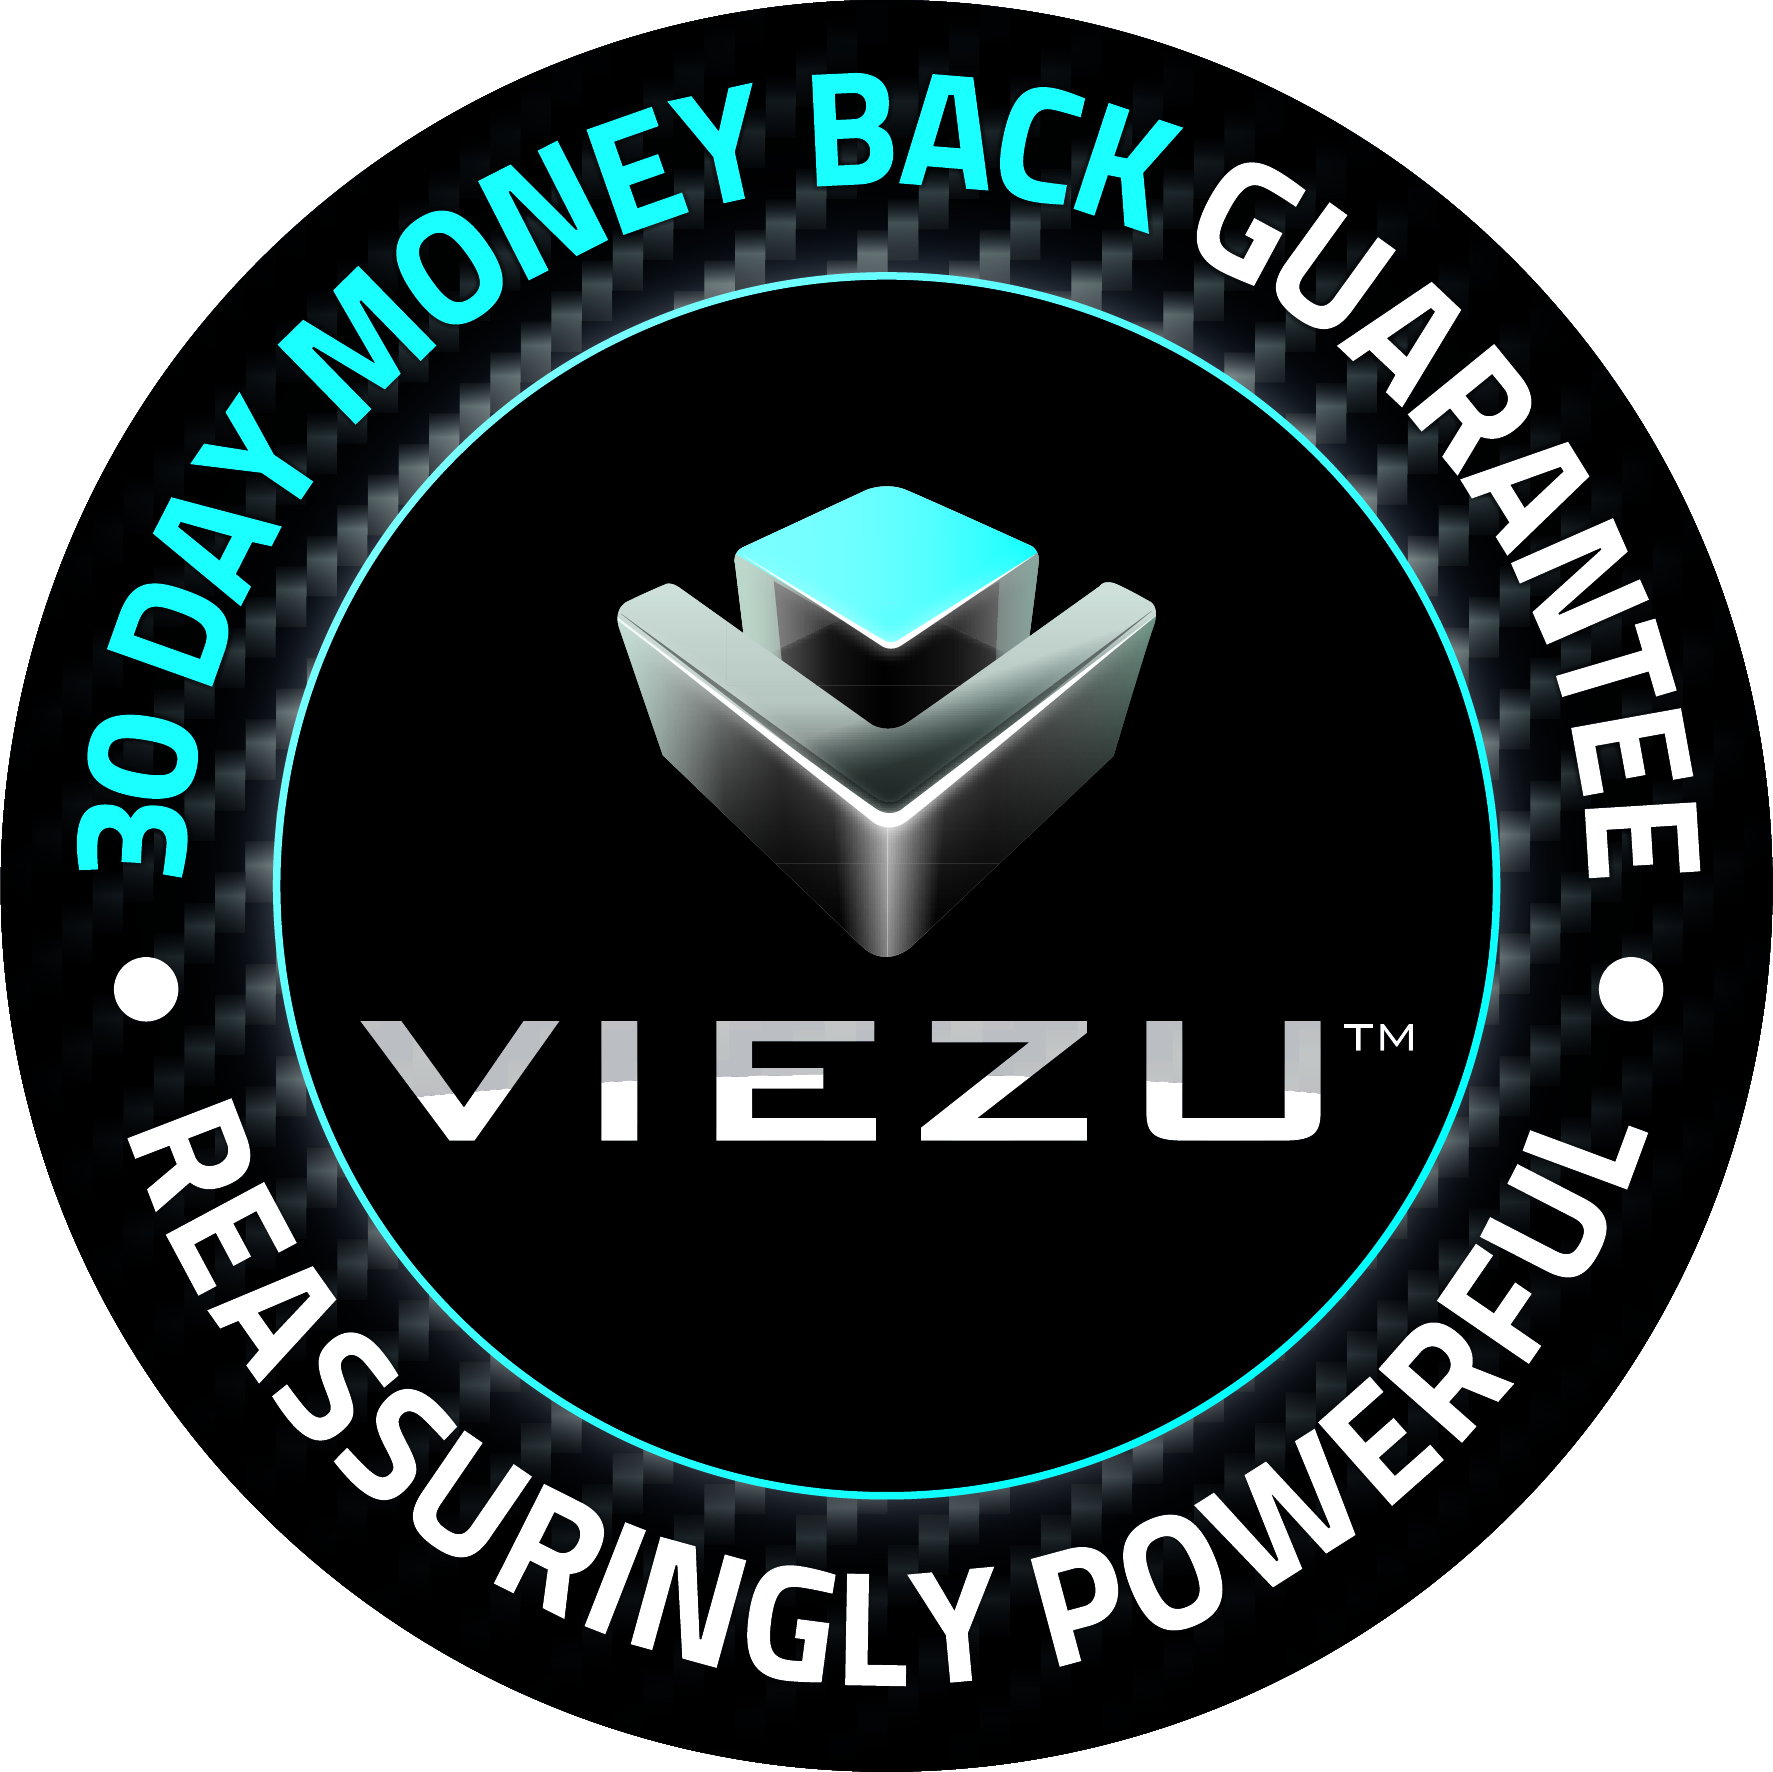 VIEZU 30 DAY MONEY BACK GURANTEE